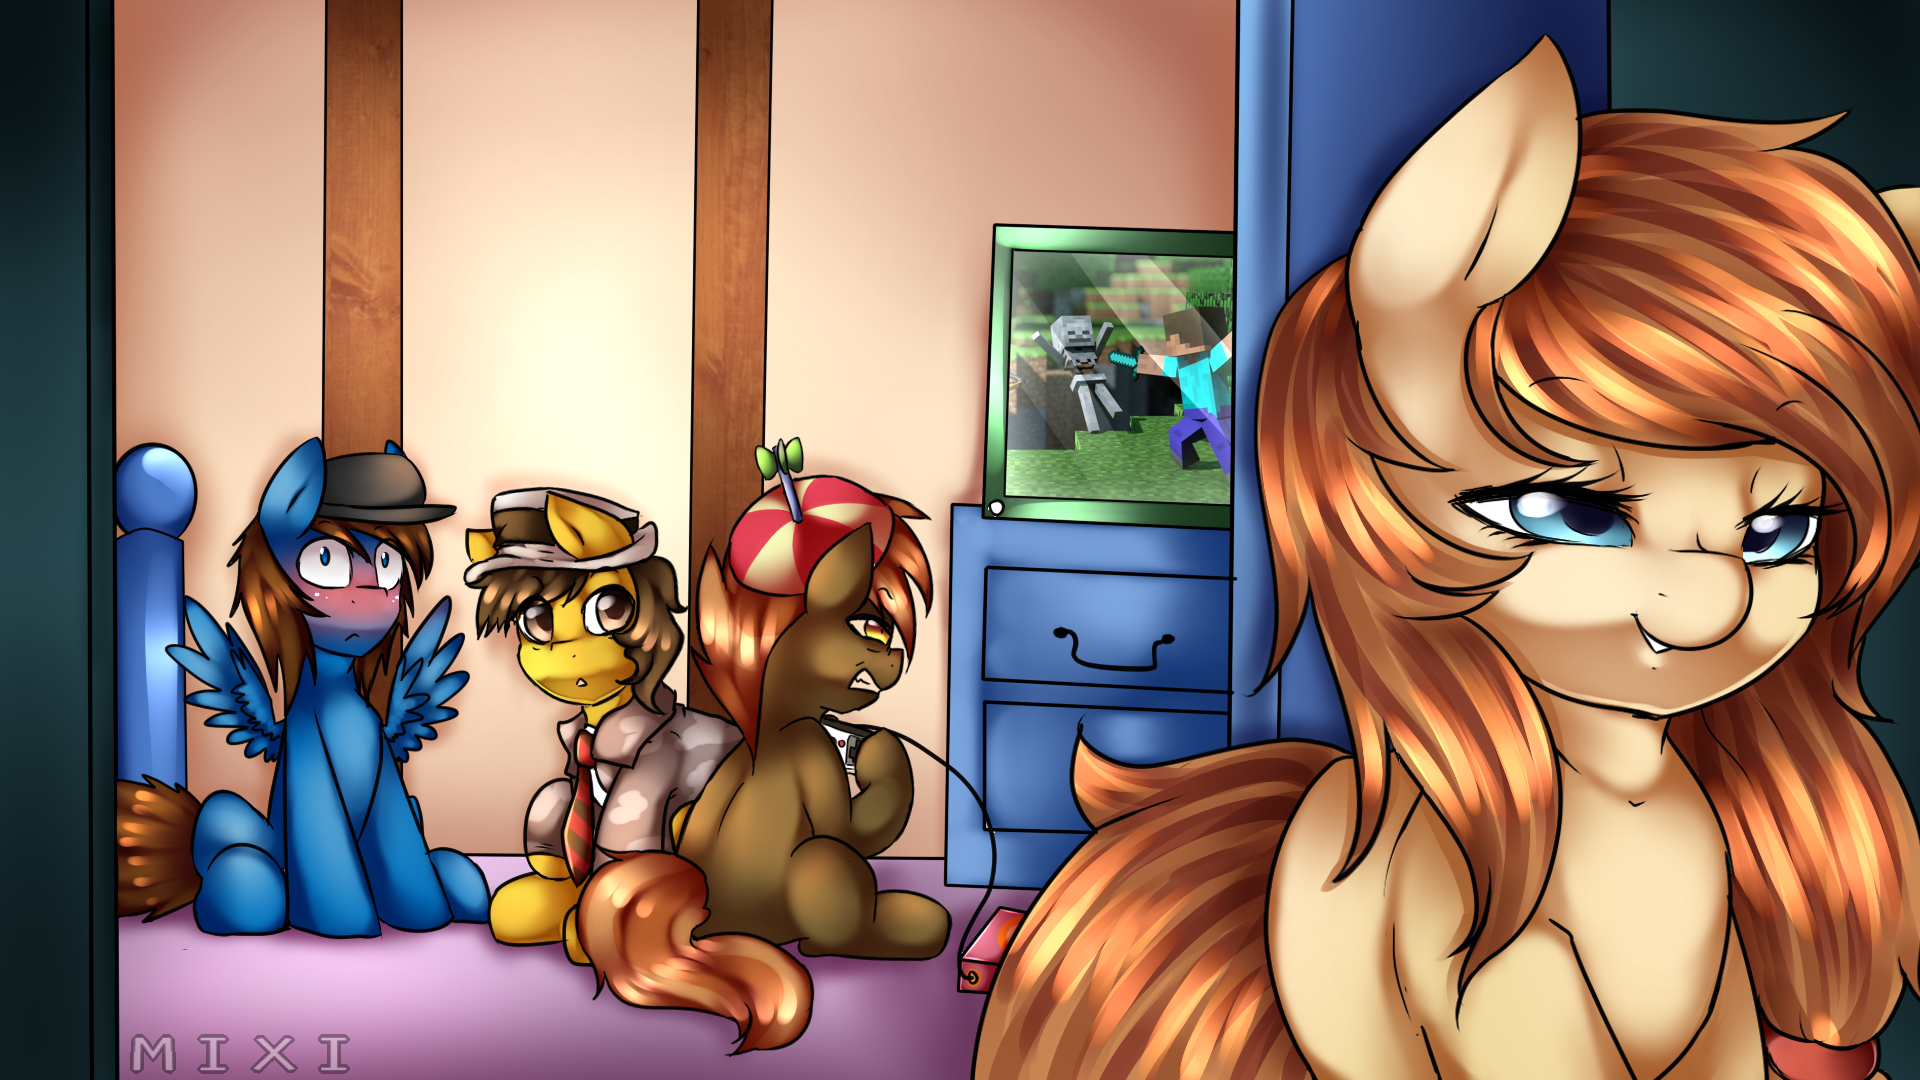 Buttons Mom (has got it going on) by miss-mixi